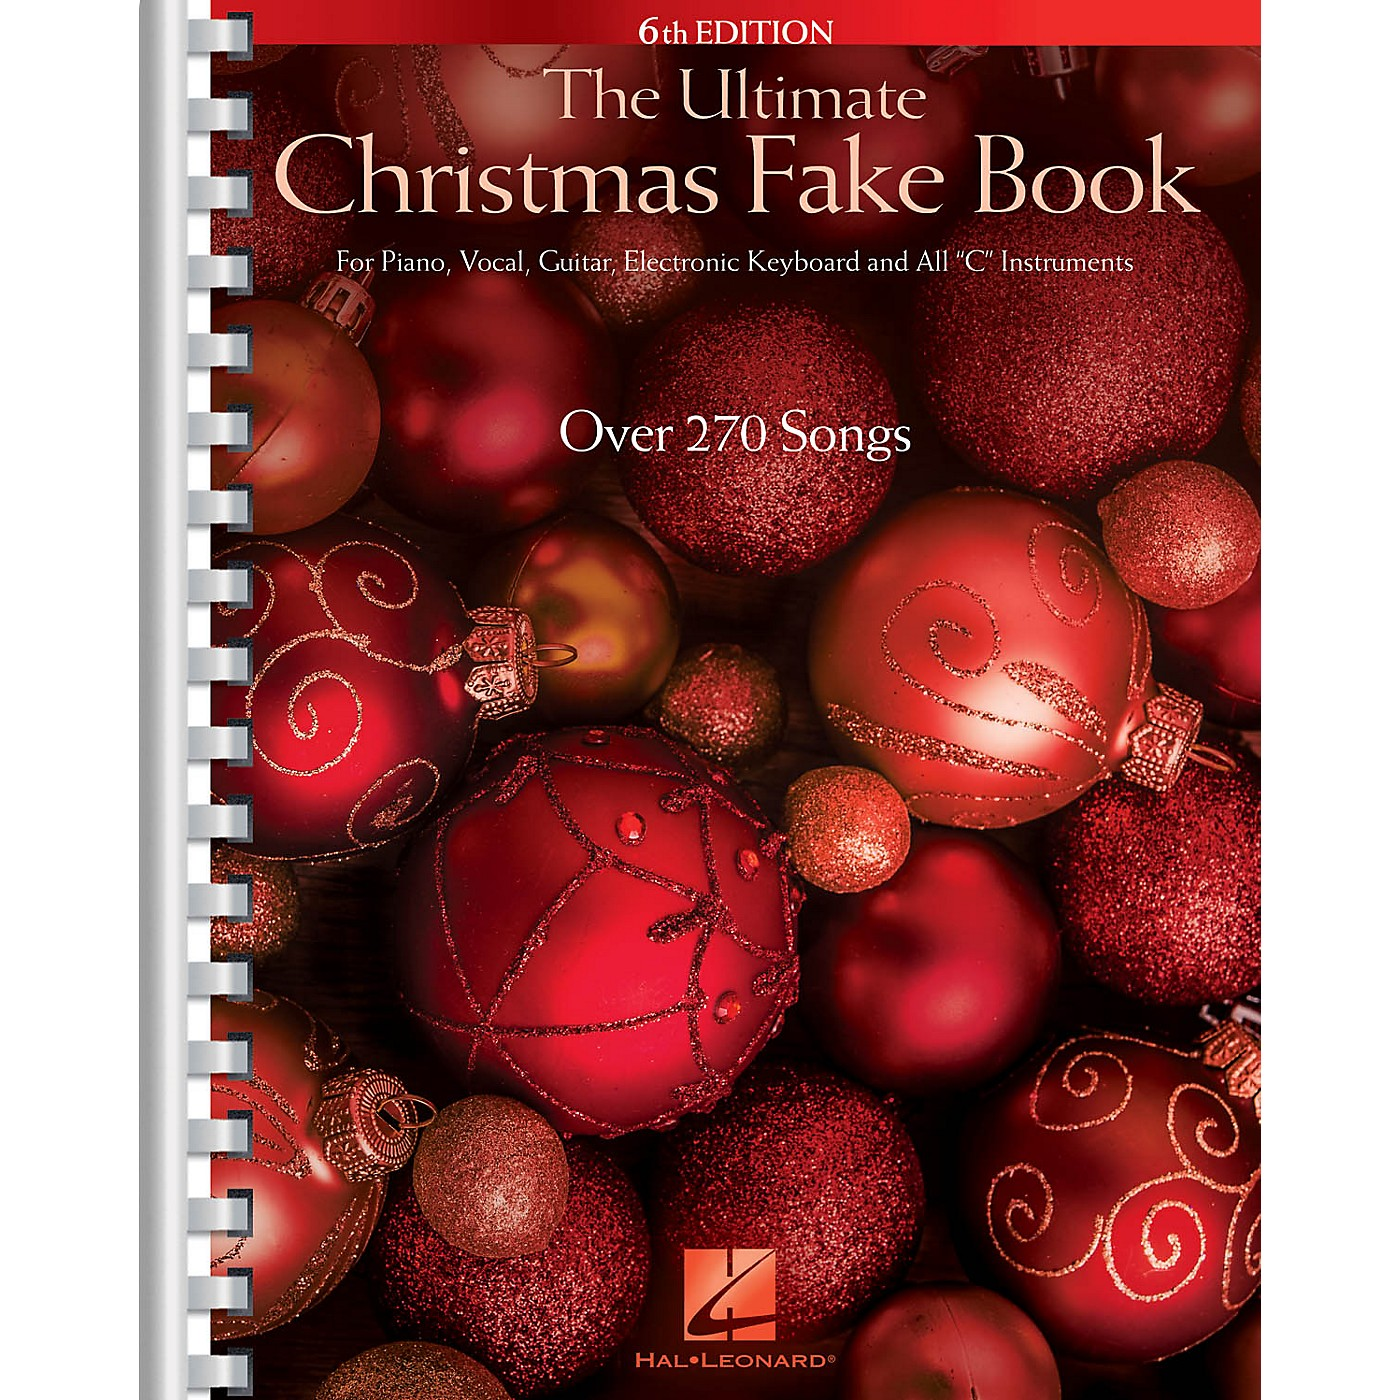 Hal Leonard The Ultimate Christmas Fake Book - 6th Edition Fake Book Series Softcover thumbnail